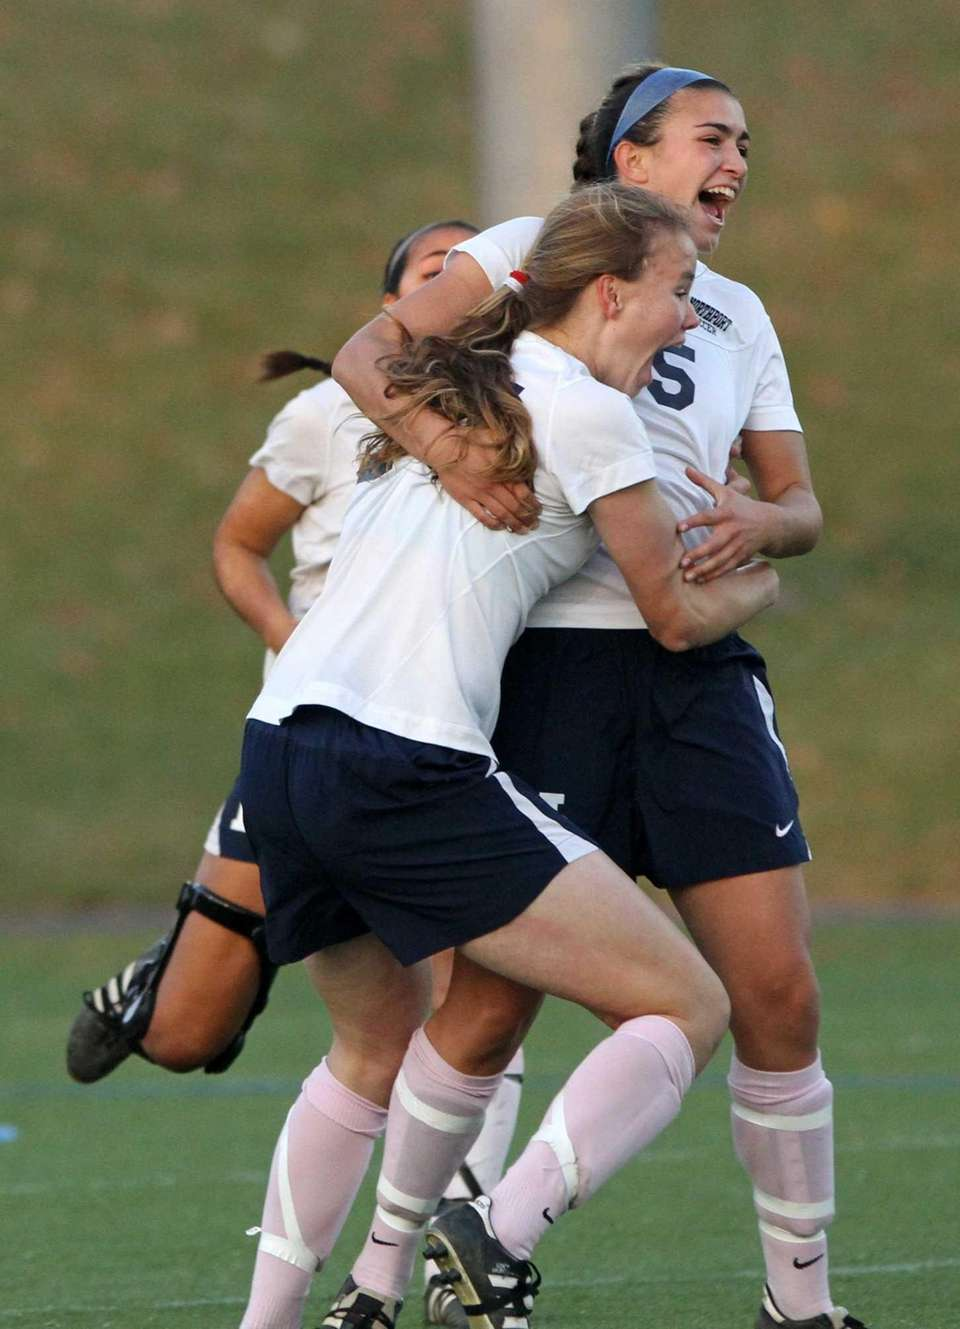 Northport's Cortney Fortunato (blue headband) celebrates with her